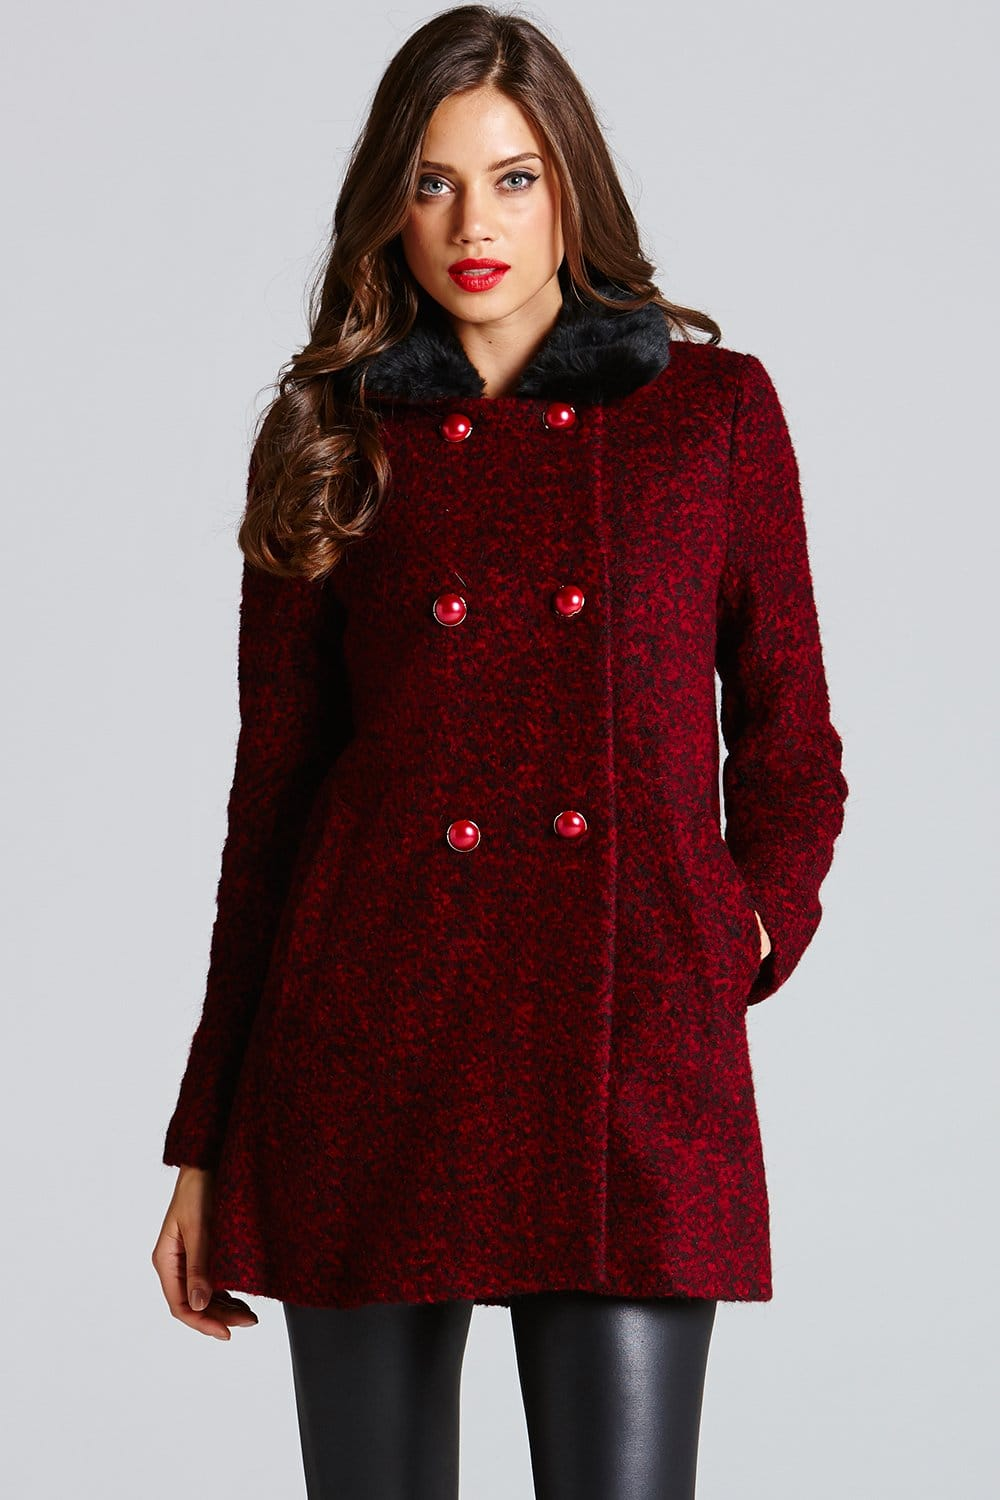 Little Mistress Red and Black Faux Fur Collar coat - Little